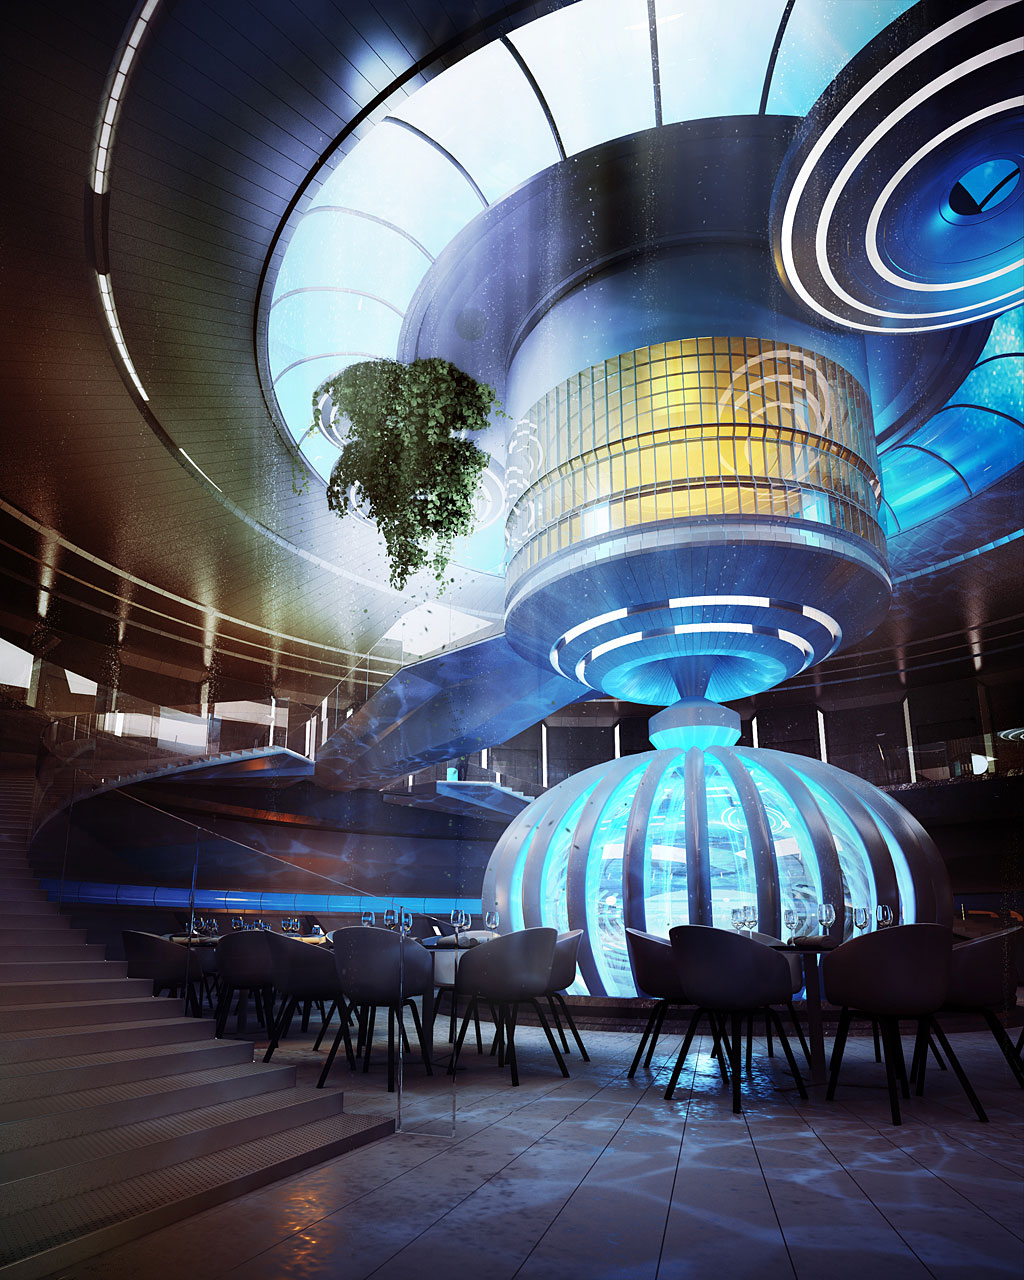 The Water Discus Underwater Hotel planned for Dubai (6)